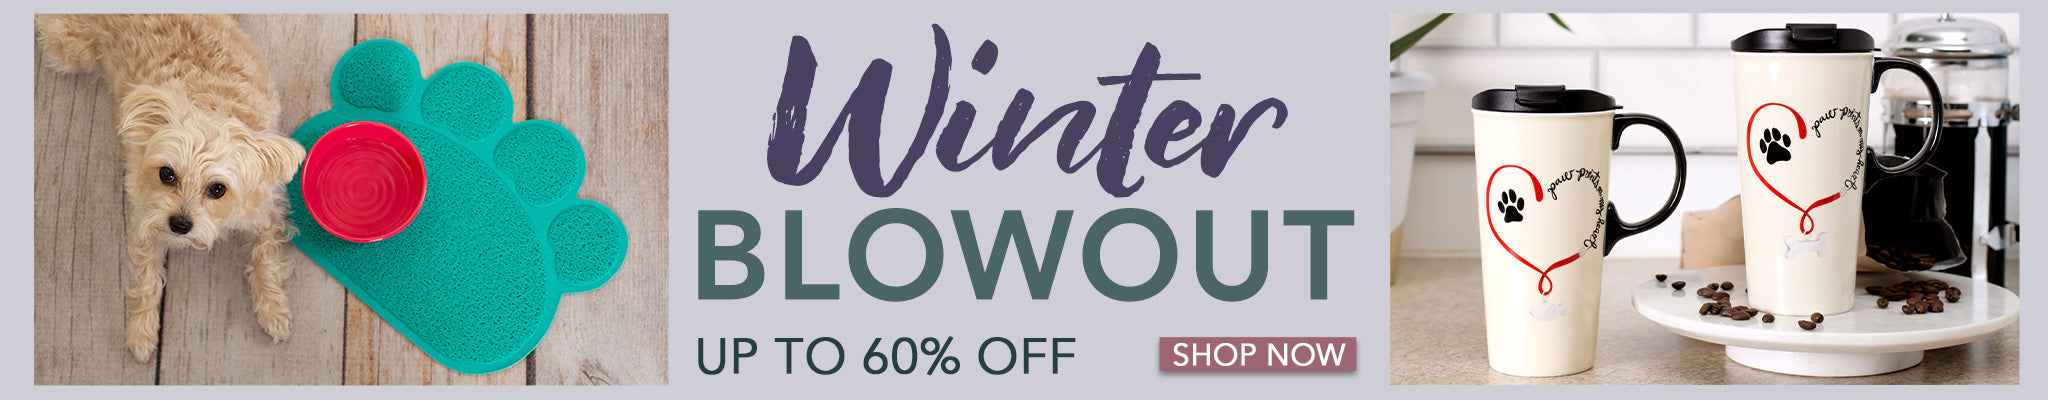 Winter Blowout